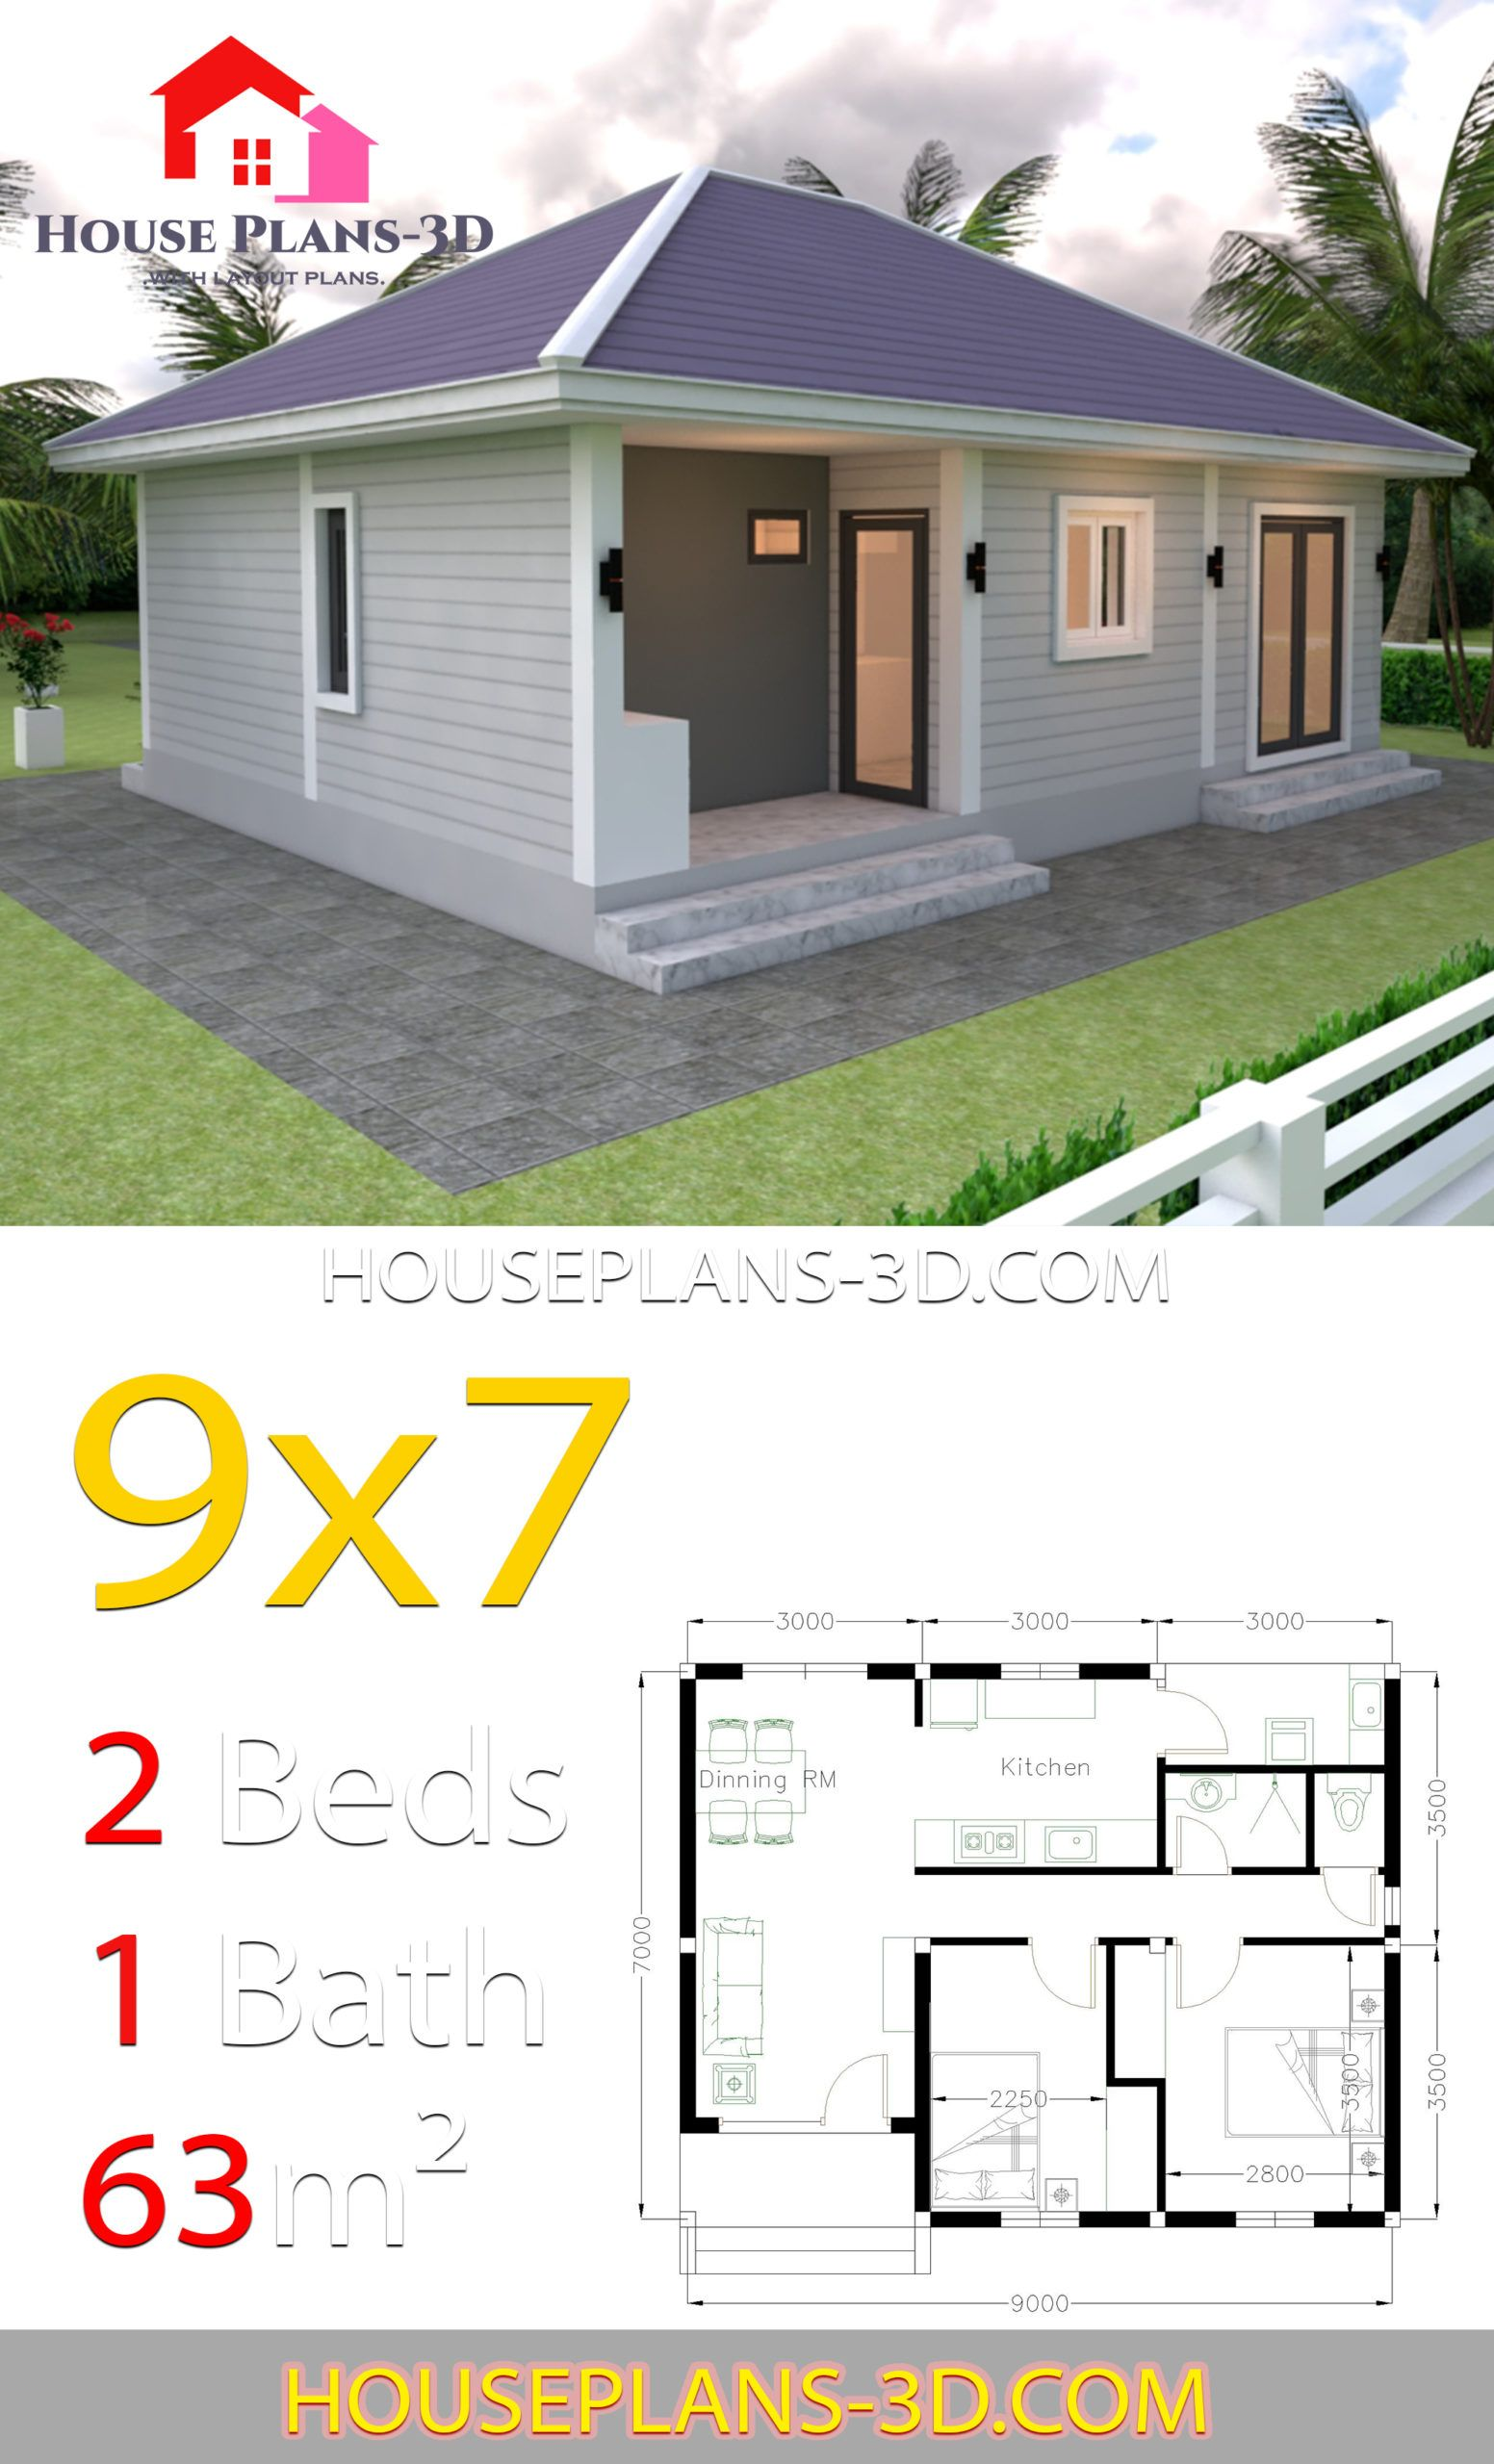 House Plans 9x7 With 2 Bedrooms Hip Roof House Plans 3d House Plans Affordable House Plans House Roof